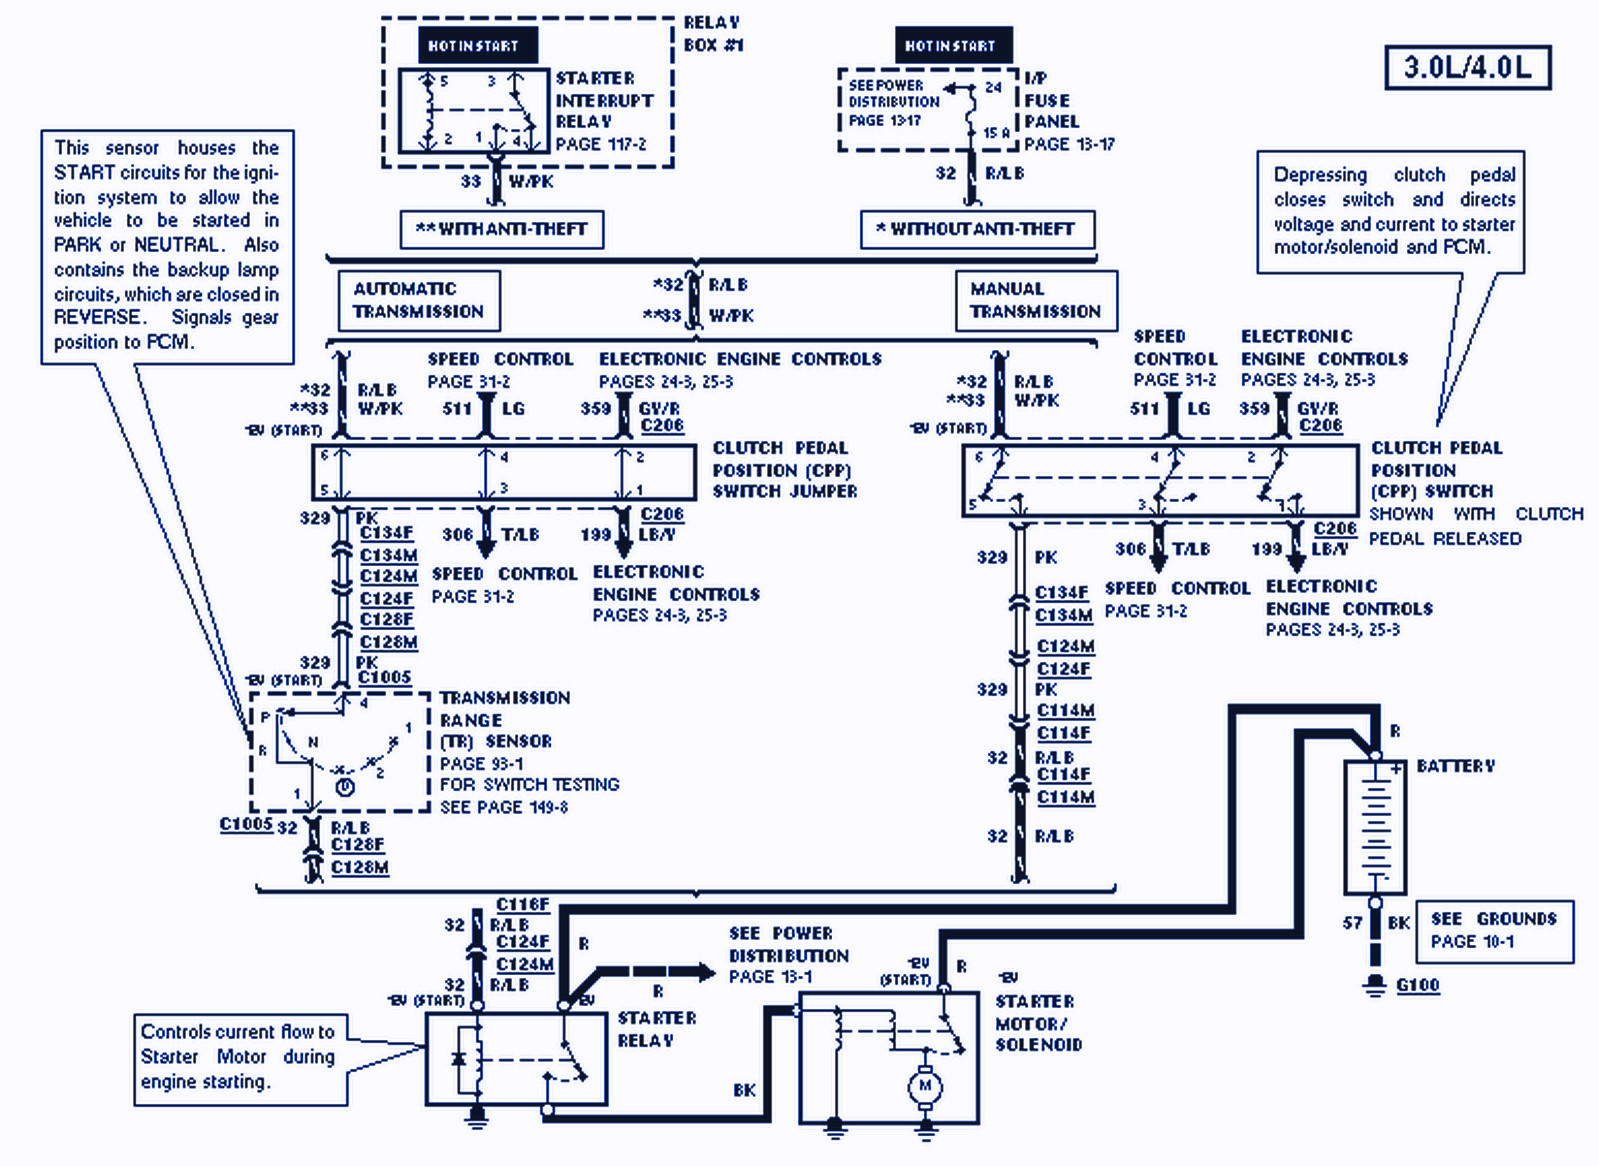 2000 mercury transmission wiring data wiring diagram schematic rh 1 4 emmerich verbindet de